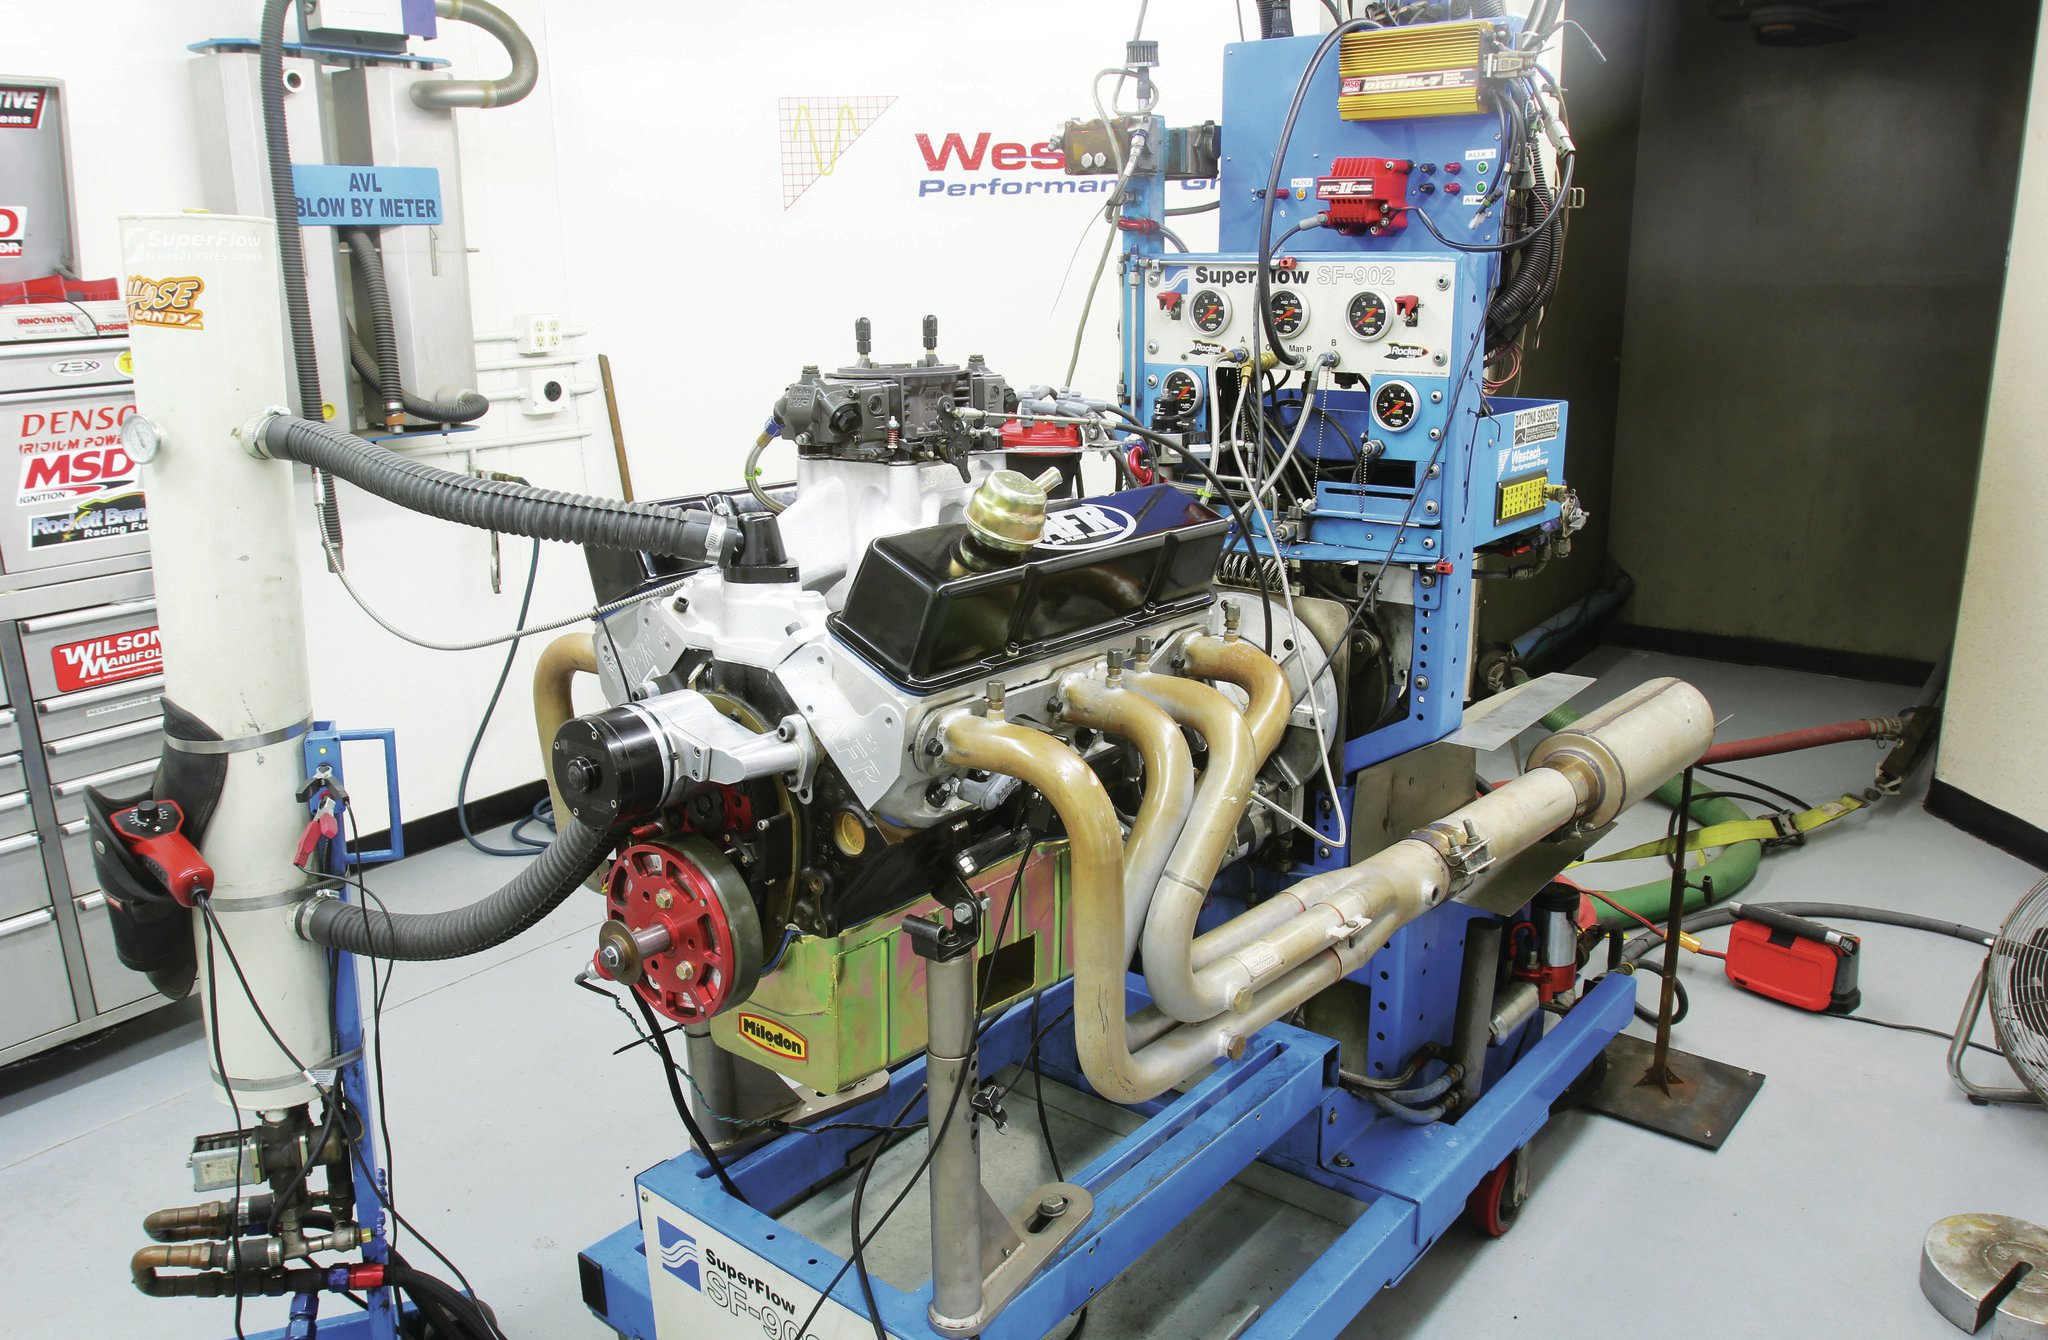 If it's a normally aspirated engine that gets you all tingly, Steve Brulé at Westech Performance recently tested a 355ci small-block Chevy with a set of Crane hydraulic roller lifters that he spun up to 8,500 rpm with no loss of valve control. The motor made 412 lb-ft of torque at 7,500 rpm. With bigger heads and a longer-duration cam that could've sustained this torque curve to 8,500 rpm, it would've raised the power number to 666 hp.